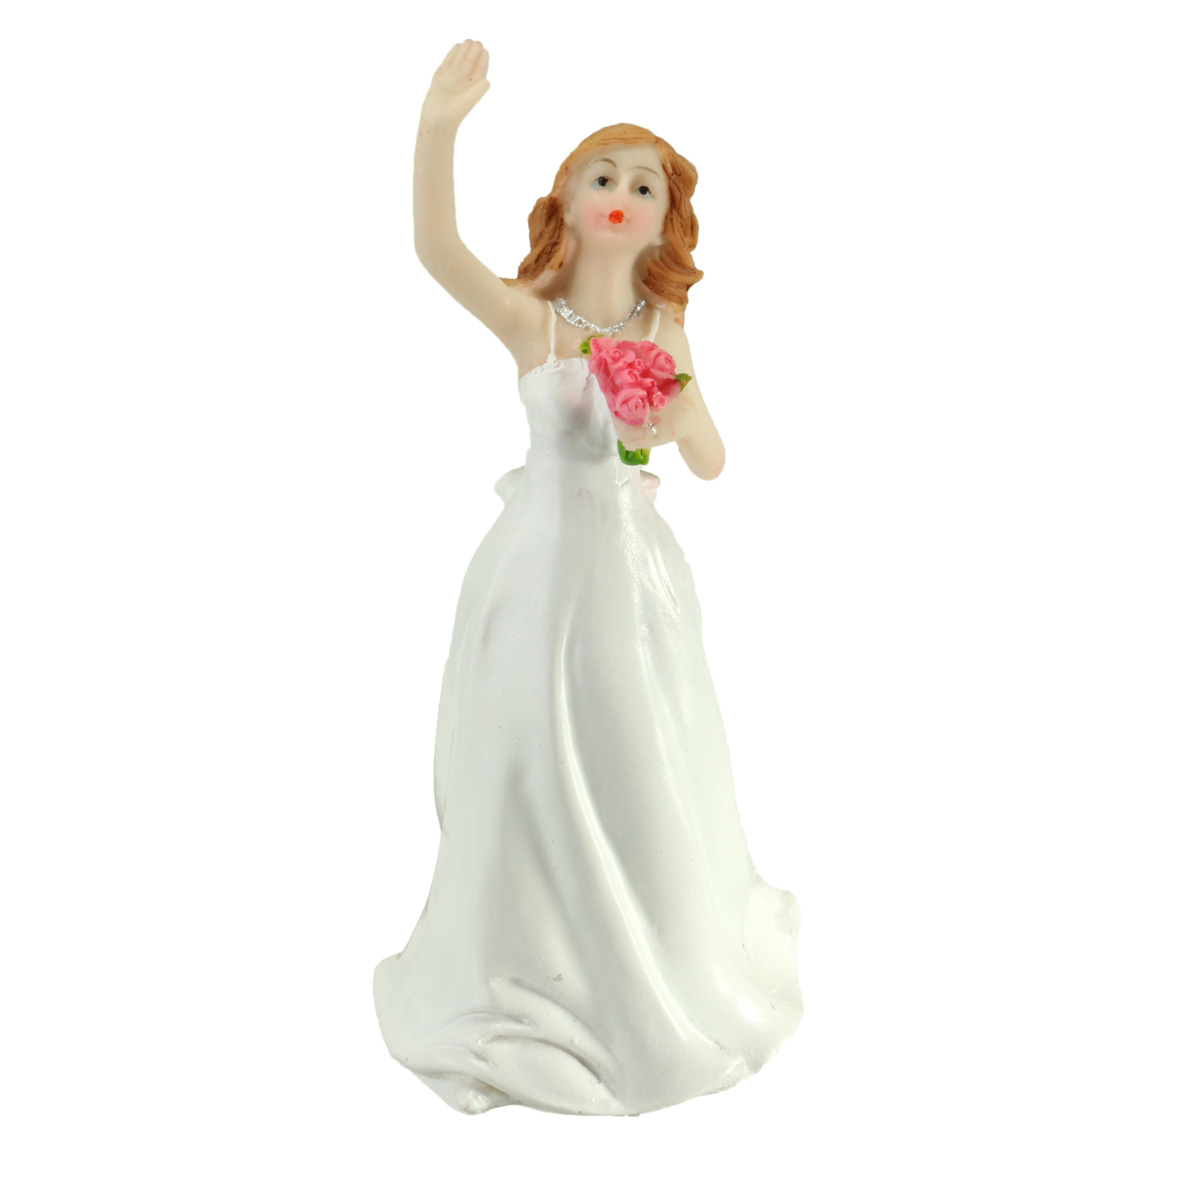 Wedding Cake Topper Modern Style Resin Craft Bride And Groom Couple Figurine Romantic Decoration Good Gift(China (Mainland))